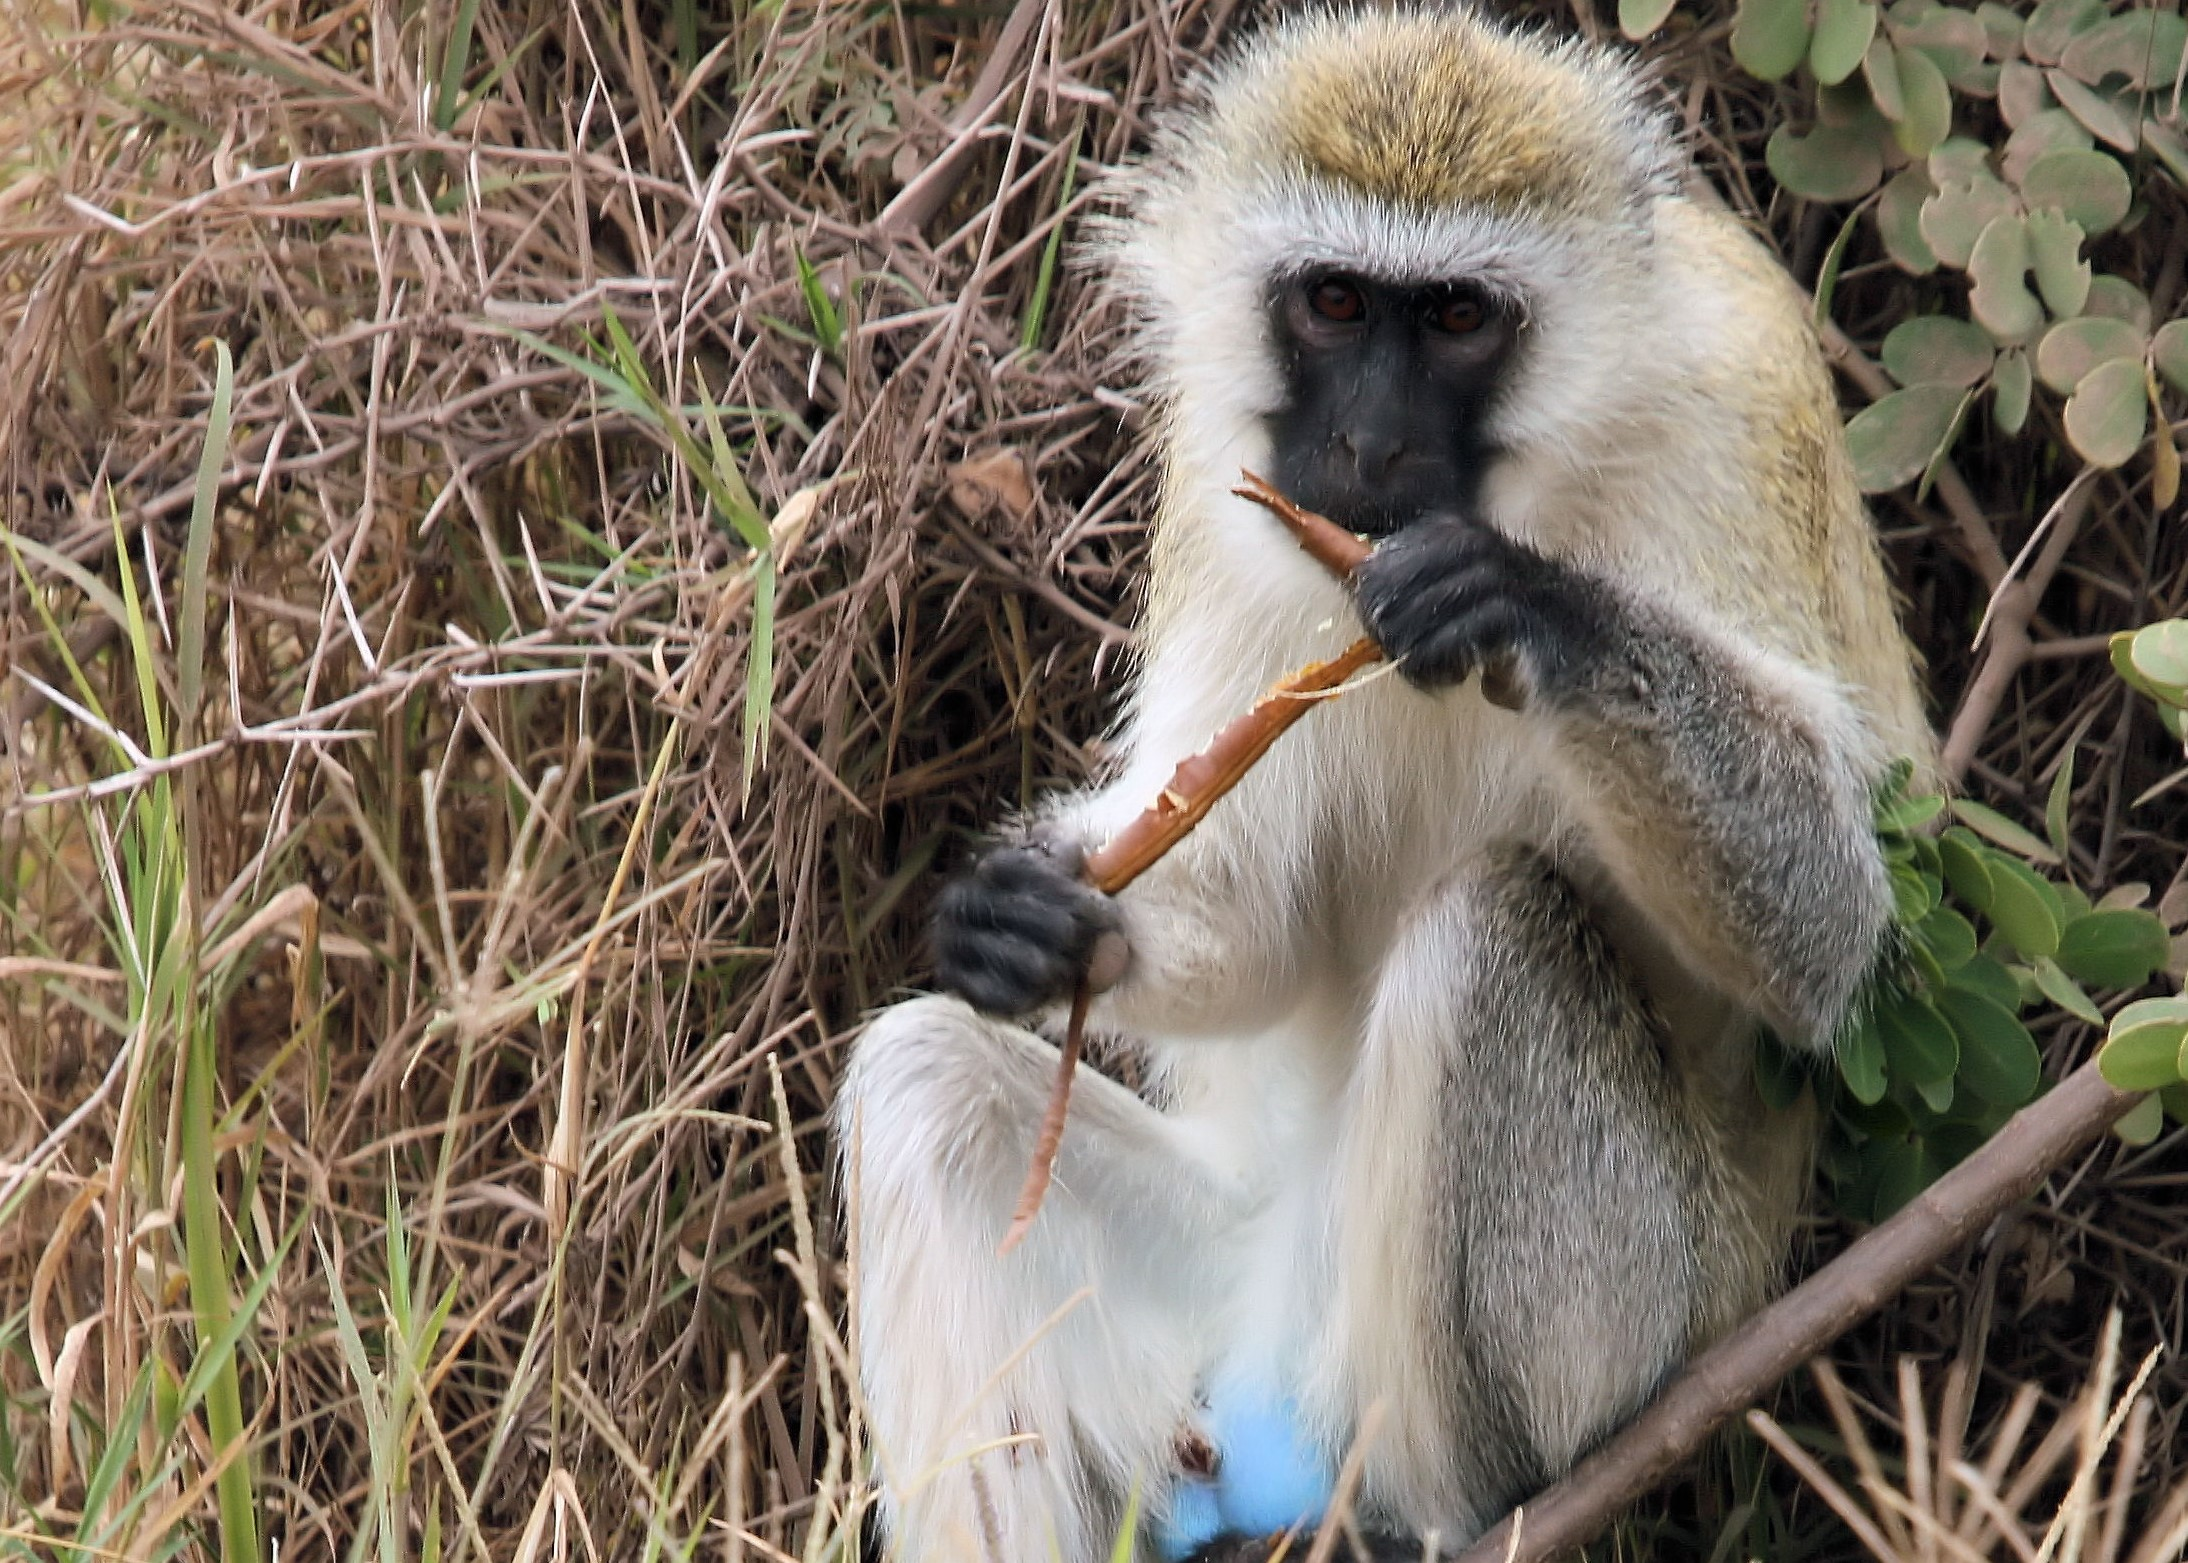 Gene discovery in monkeys could shed light on defense against HIV - picture 1